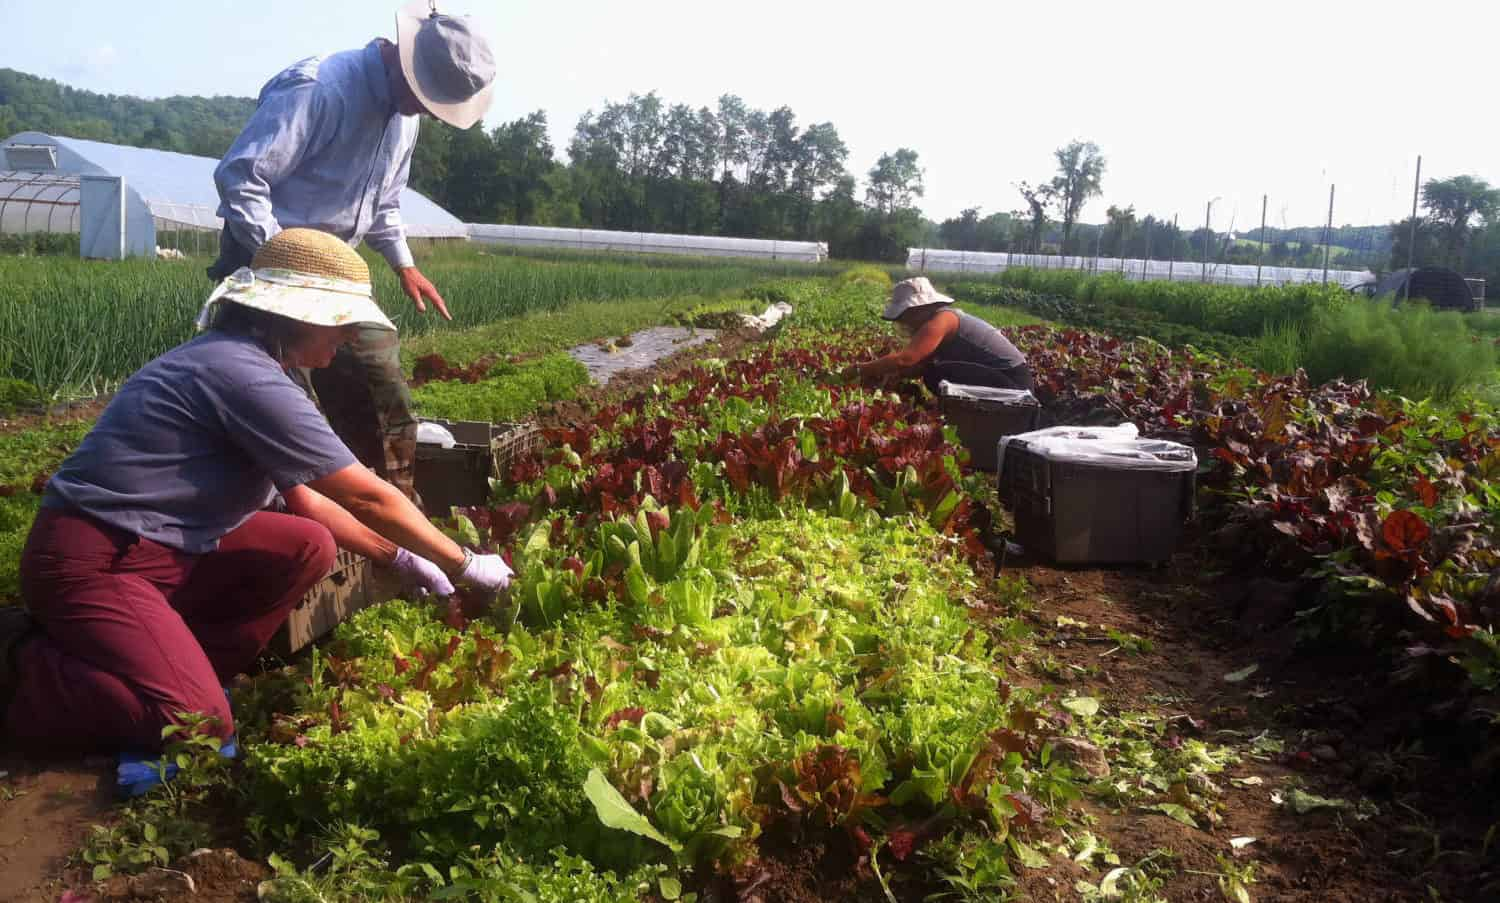 Food Tank is highlighting 15 organizations around the U.S. fighting food waste and food insecurity through gleaning.